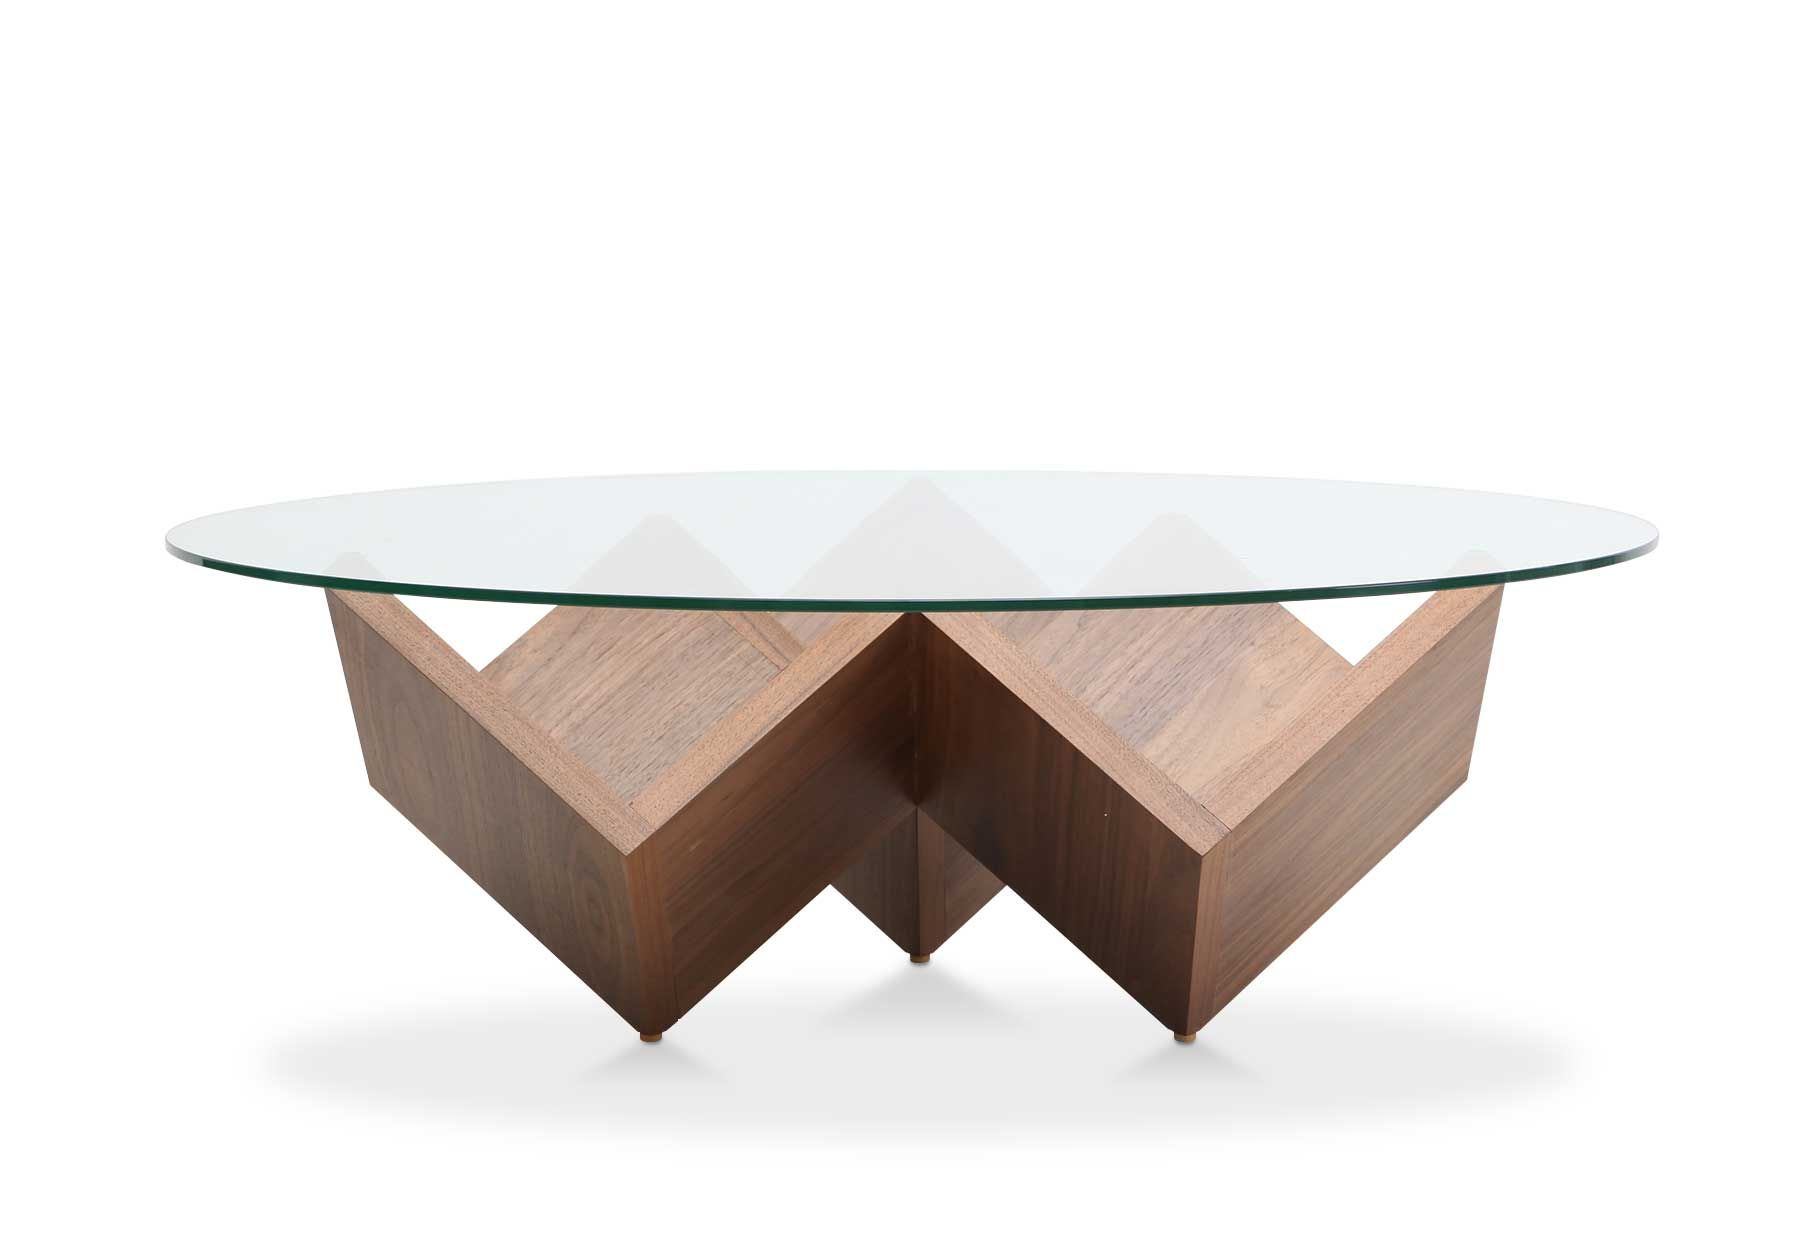 Designer Furniture Mall Online Singapore 70 Off Sales Castlery Com Coffee Table Table Dining Table [ 1245 x 1800 Pixel ]